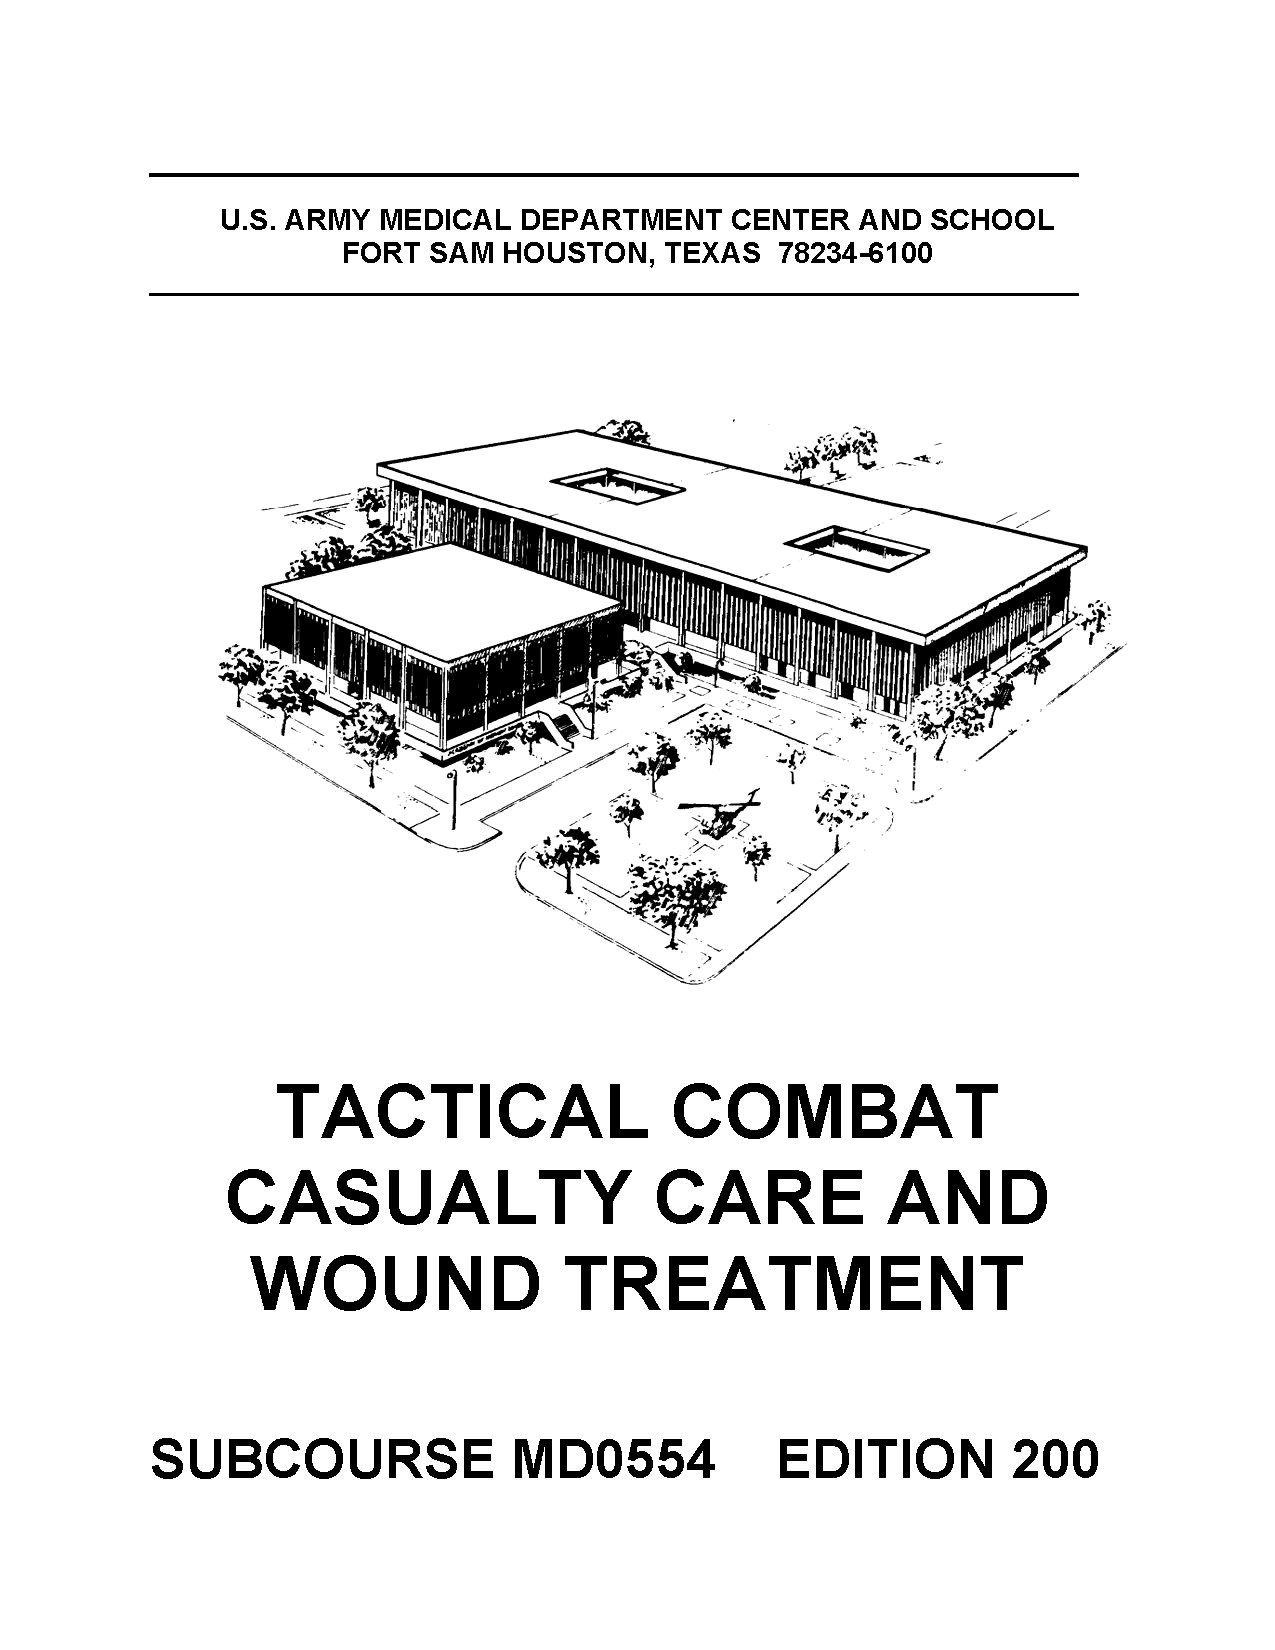 MD0554 MD 0554 - Tactical Combat Casualty Care & Wound Treatment Edition 200 (Loose Leaf) pdf epub